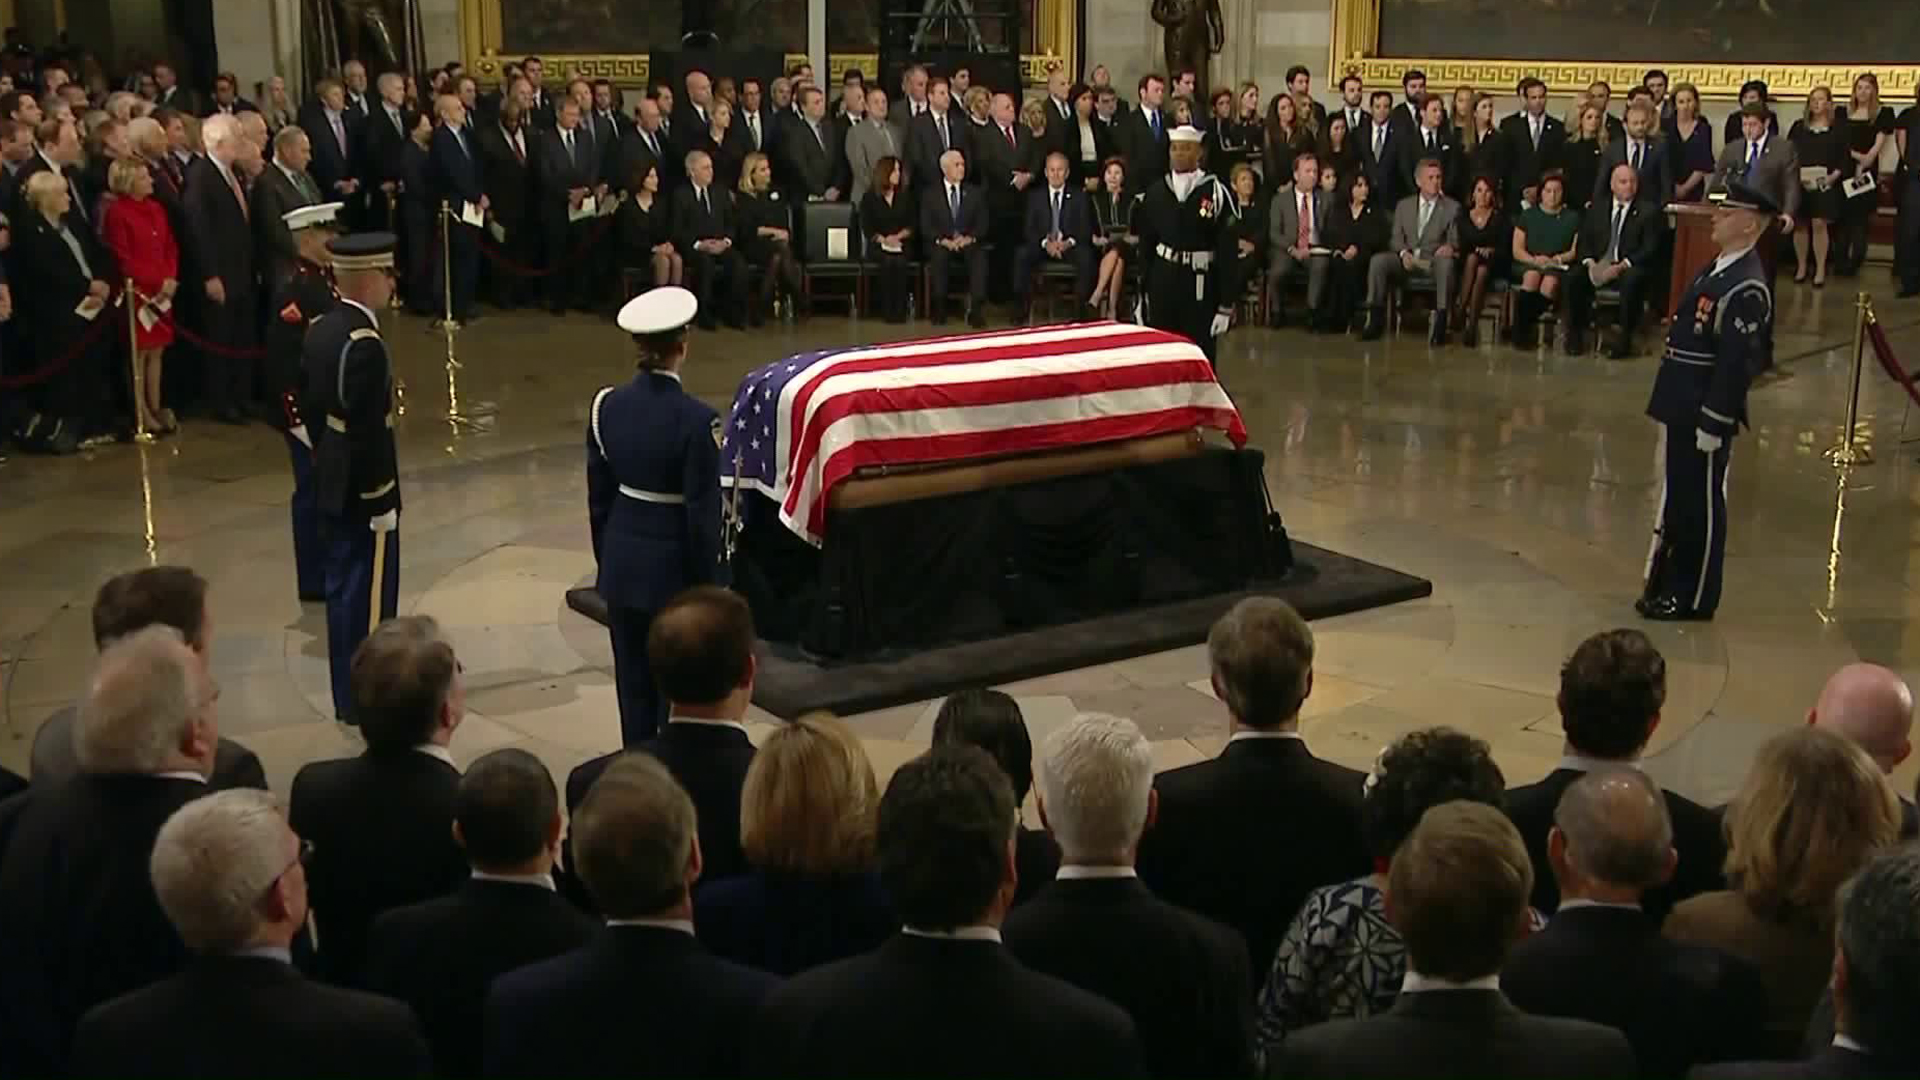 A ceremony was held honoring George H.W. Bush at the U.S. Capitol on Dec. 3, 2018. (Credit: Pool)